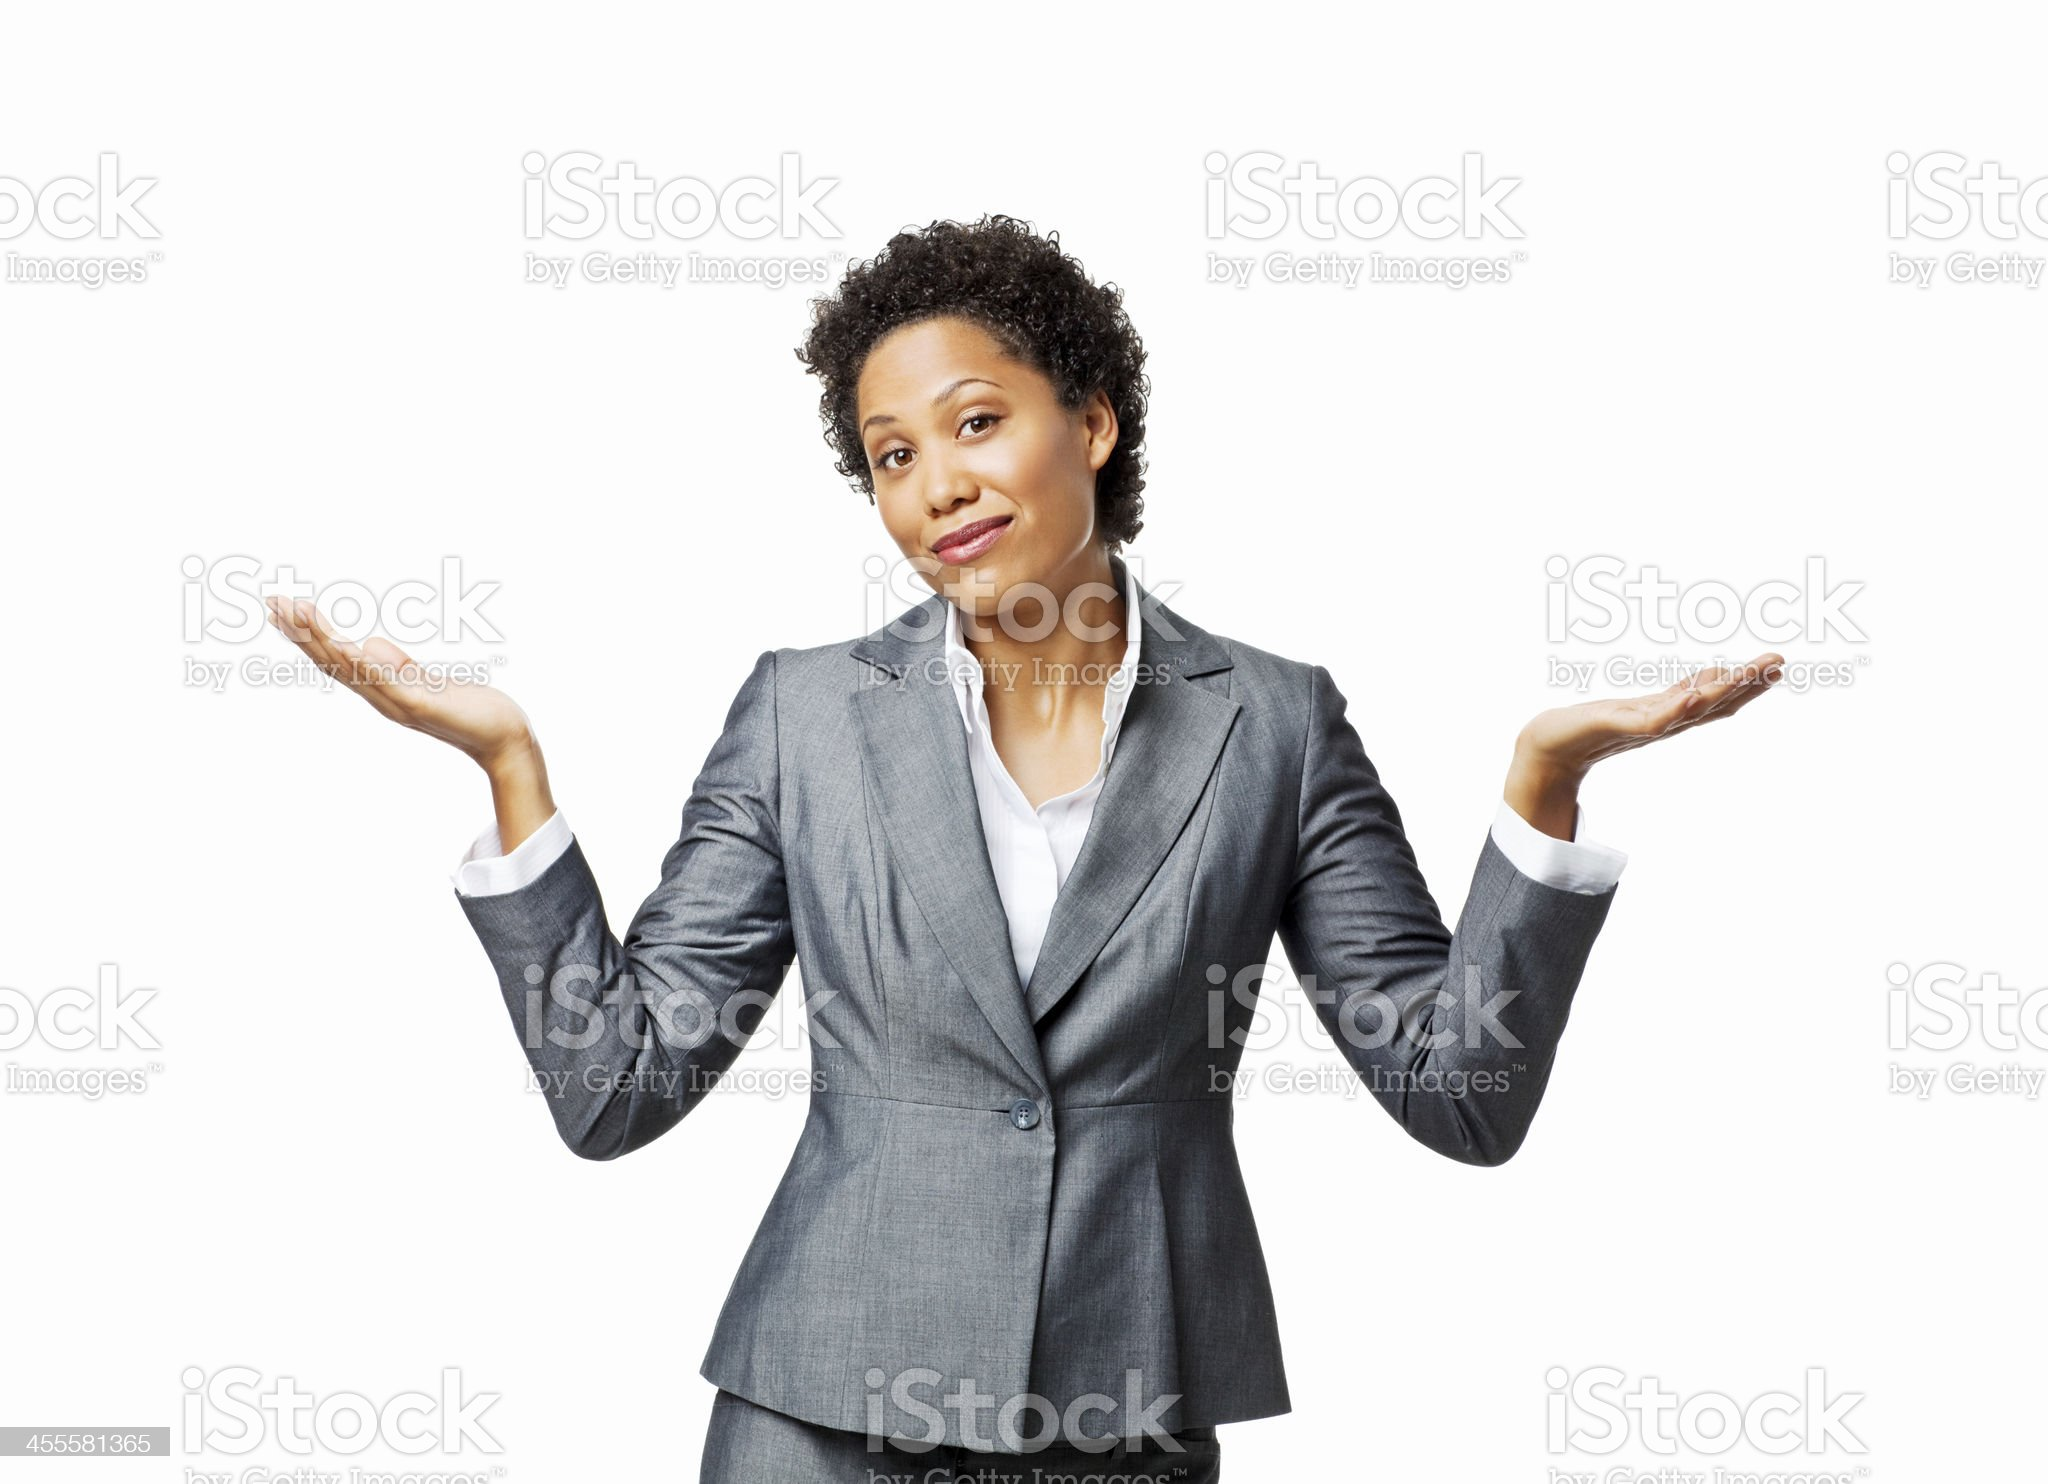 Businesswoman Shrugging Her Shoulders - Isolated royalty-free stock photo